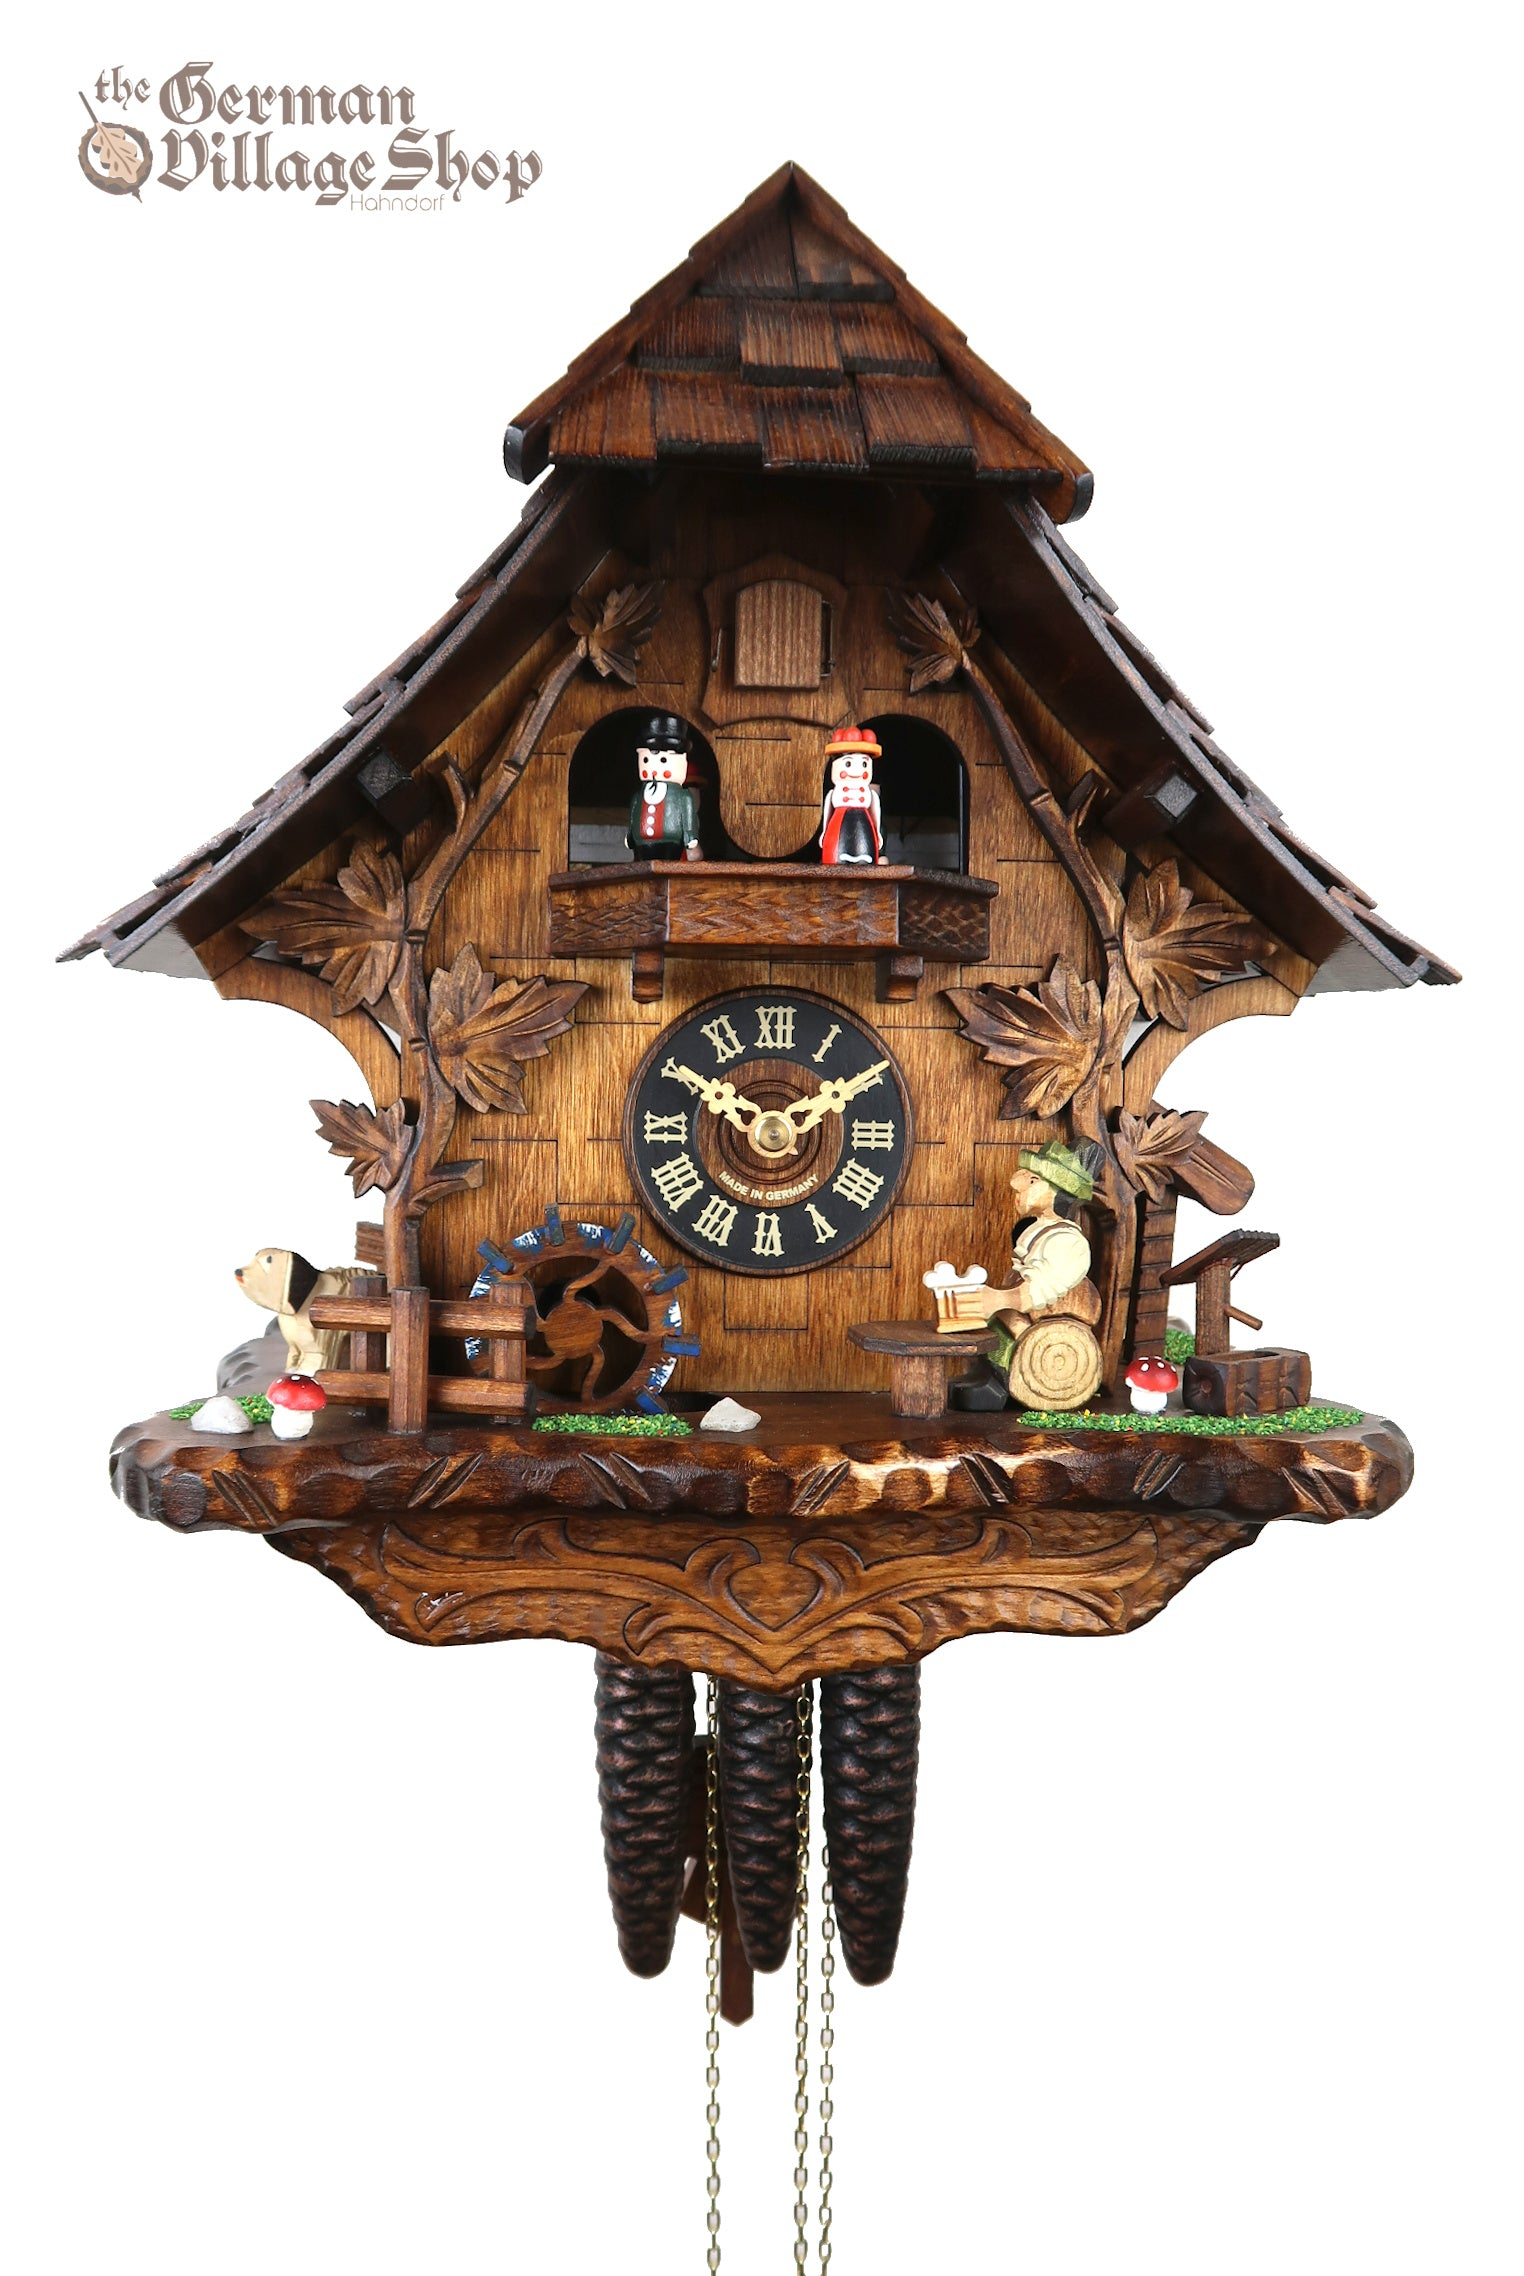 Cuckoo Clock with Beer drinker for sale in Australia